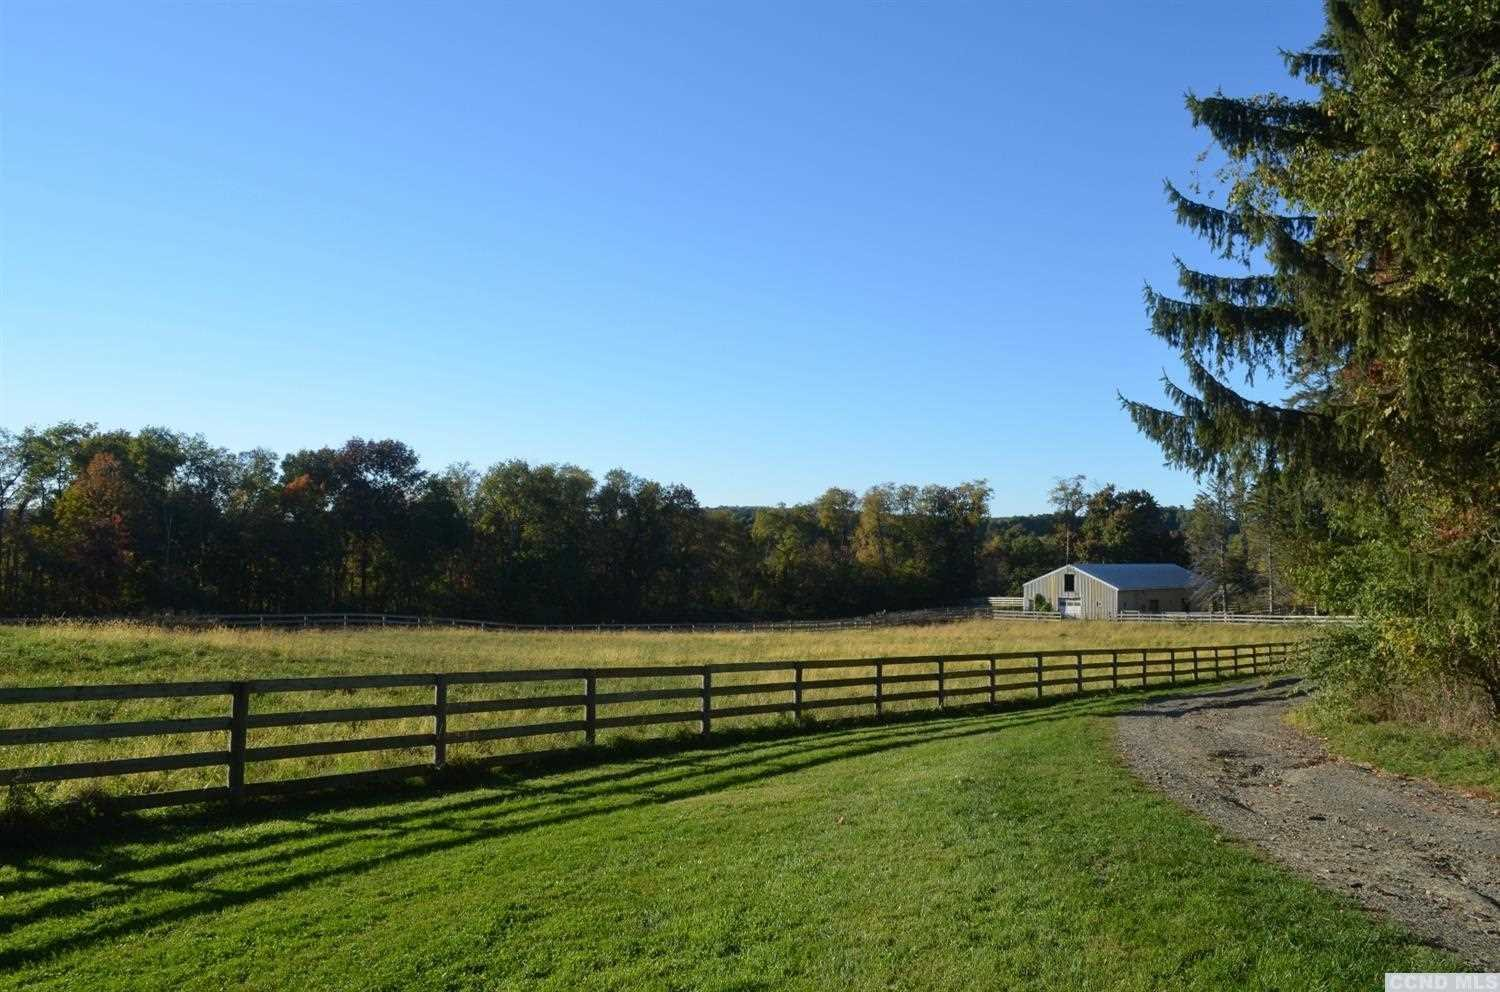 Land for Sale at COUNTY ROUTE 13 COUNTY ROUTE 13 Old Chatham, New York 12136 United States